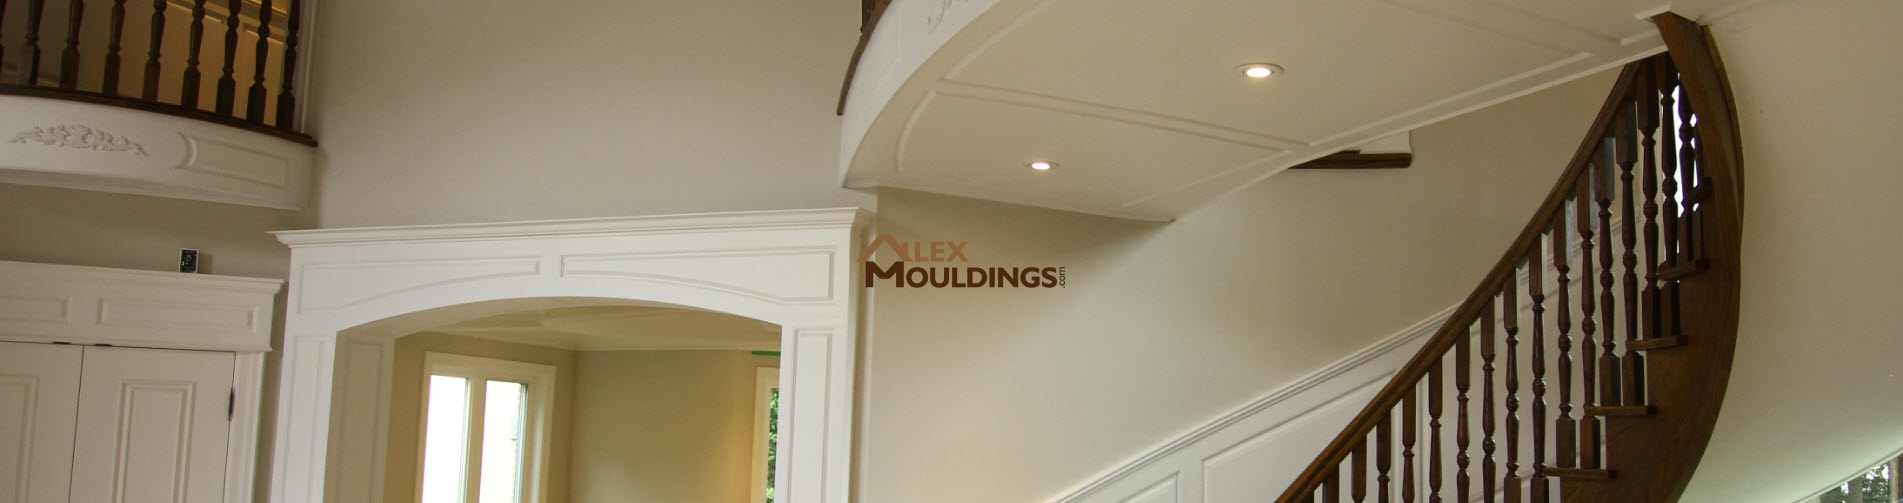 Professional Millwork